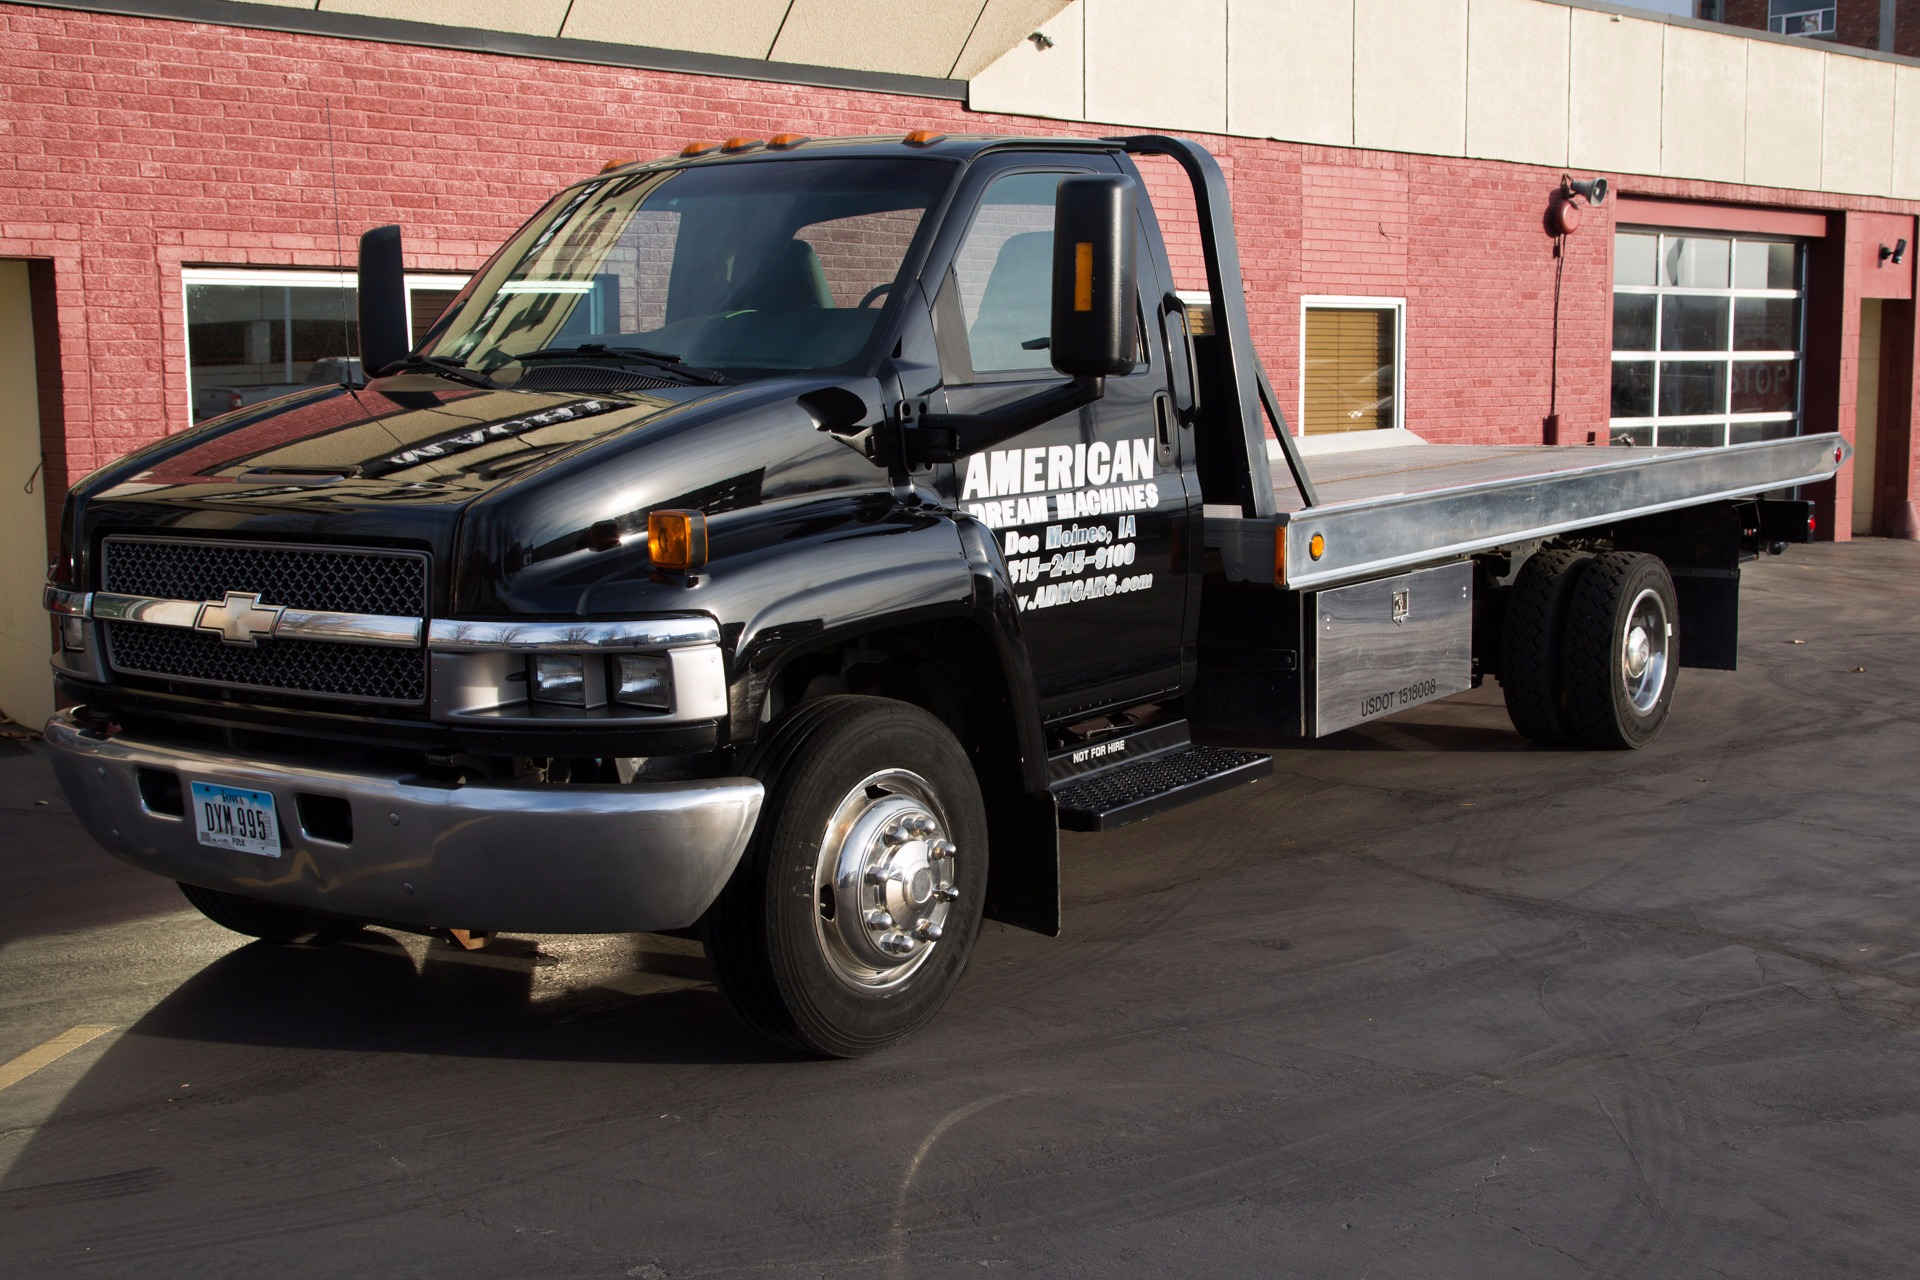 2003 Chevrolet 5500 Black Rollback, Tow-truck, Flatbed